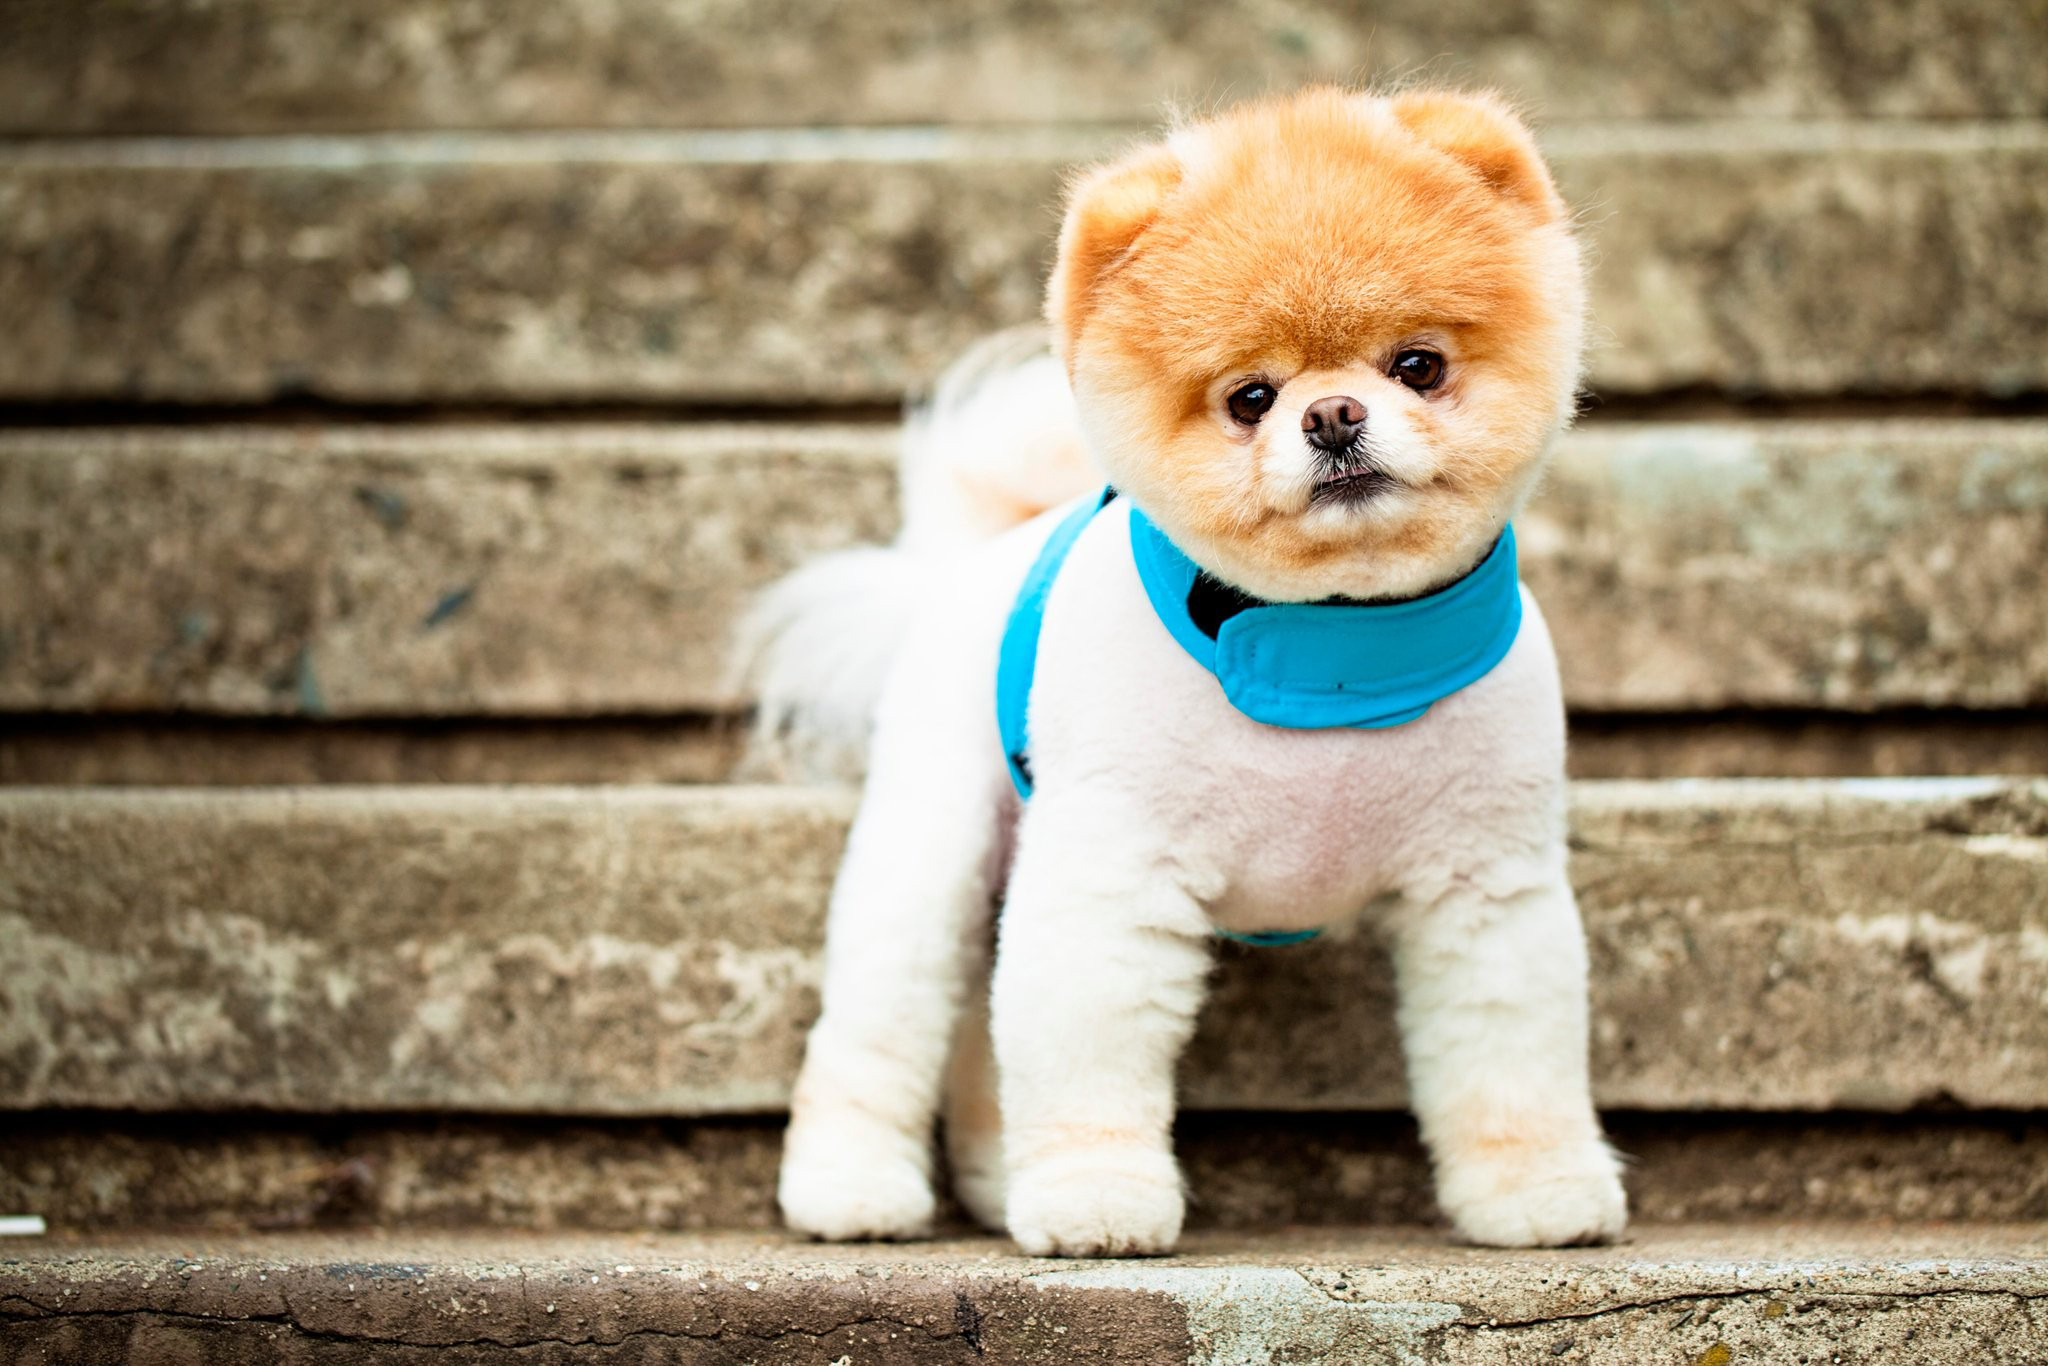 102584 Screensavers and Wallpapers Eyes for phone. Download Animals, Dog, Muzzle, Eyes, Stairs, Ladder, Ears, Breed, Collar, Pomeranian, Pomeranian Spitz pictures for free